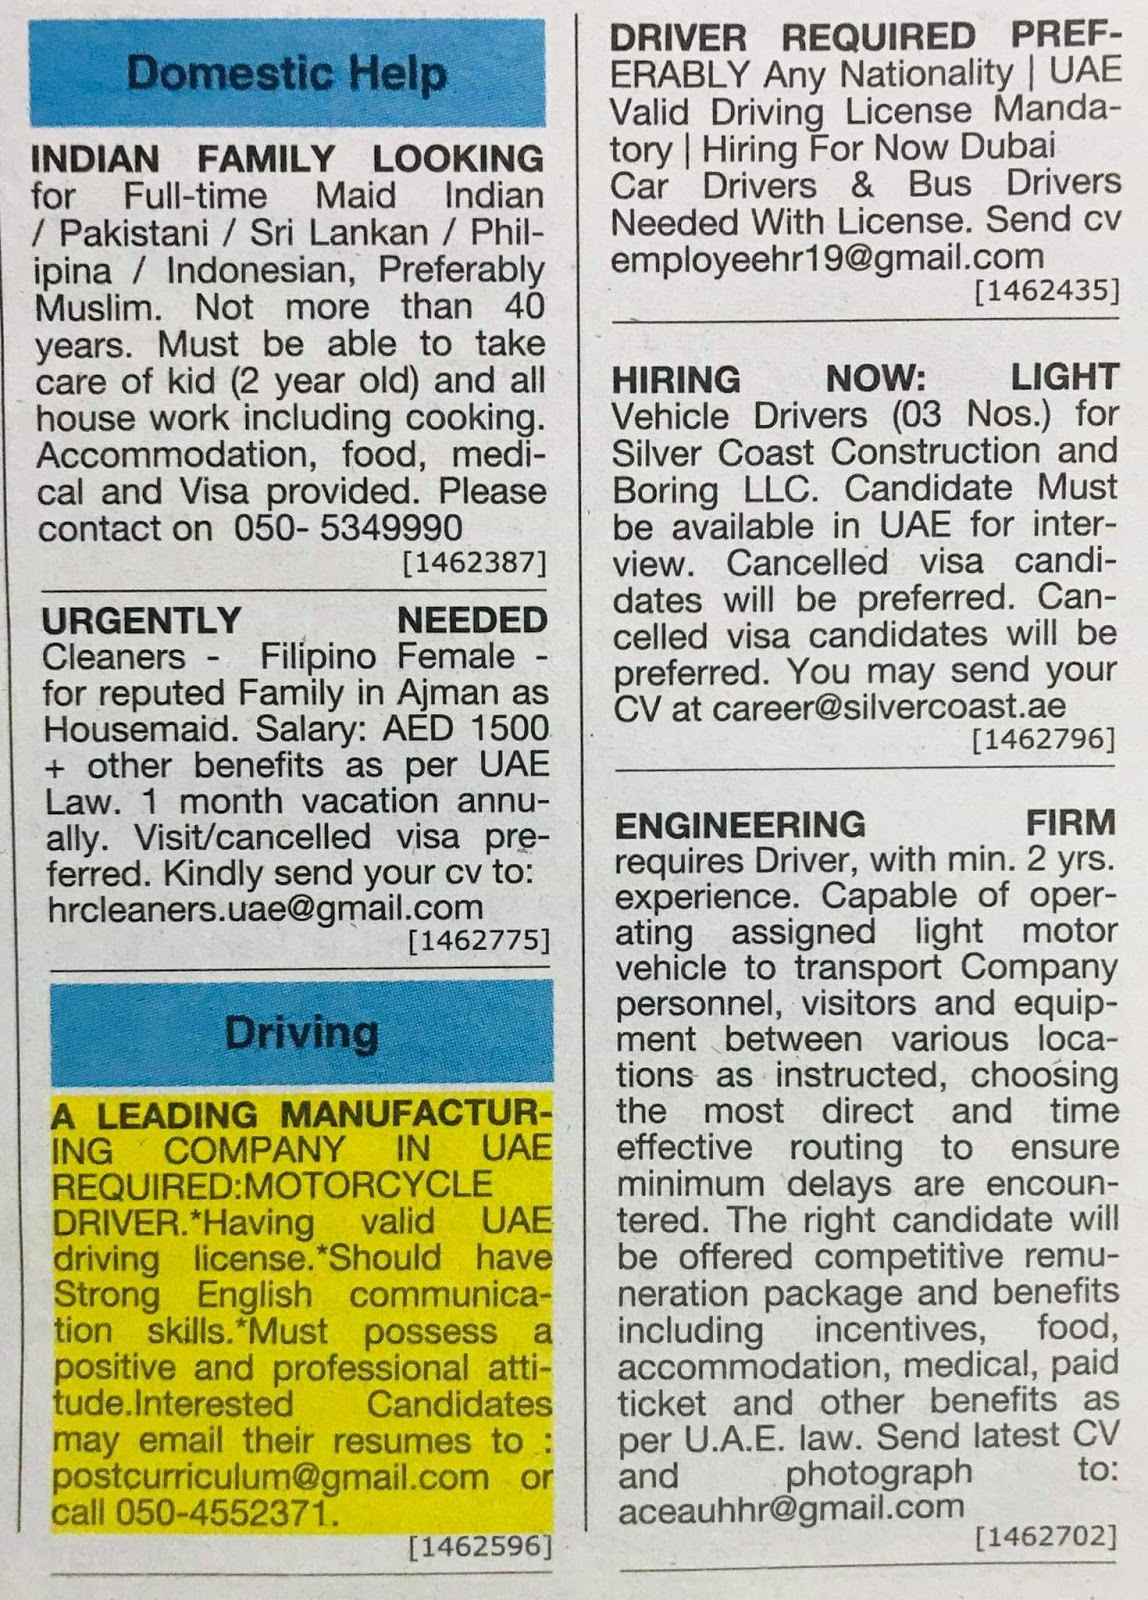 Following Positions Required for Dubai Local Hiring Jobs